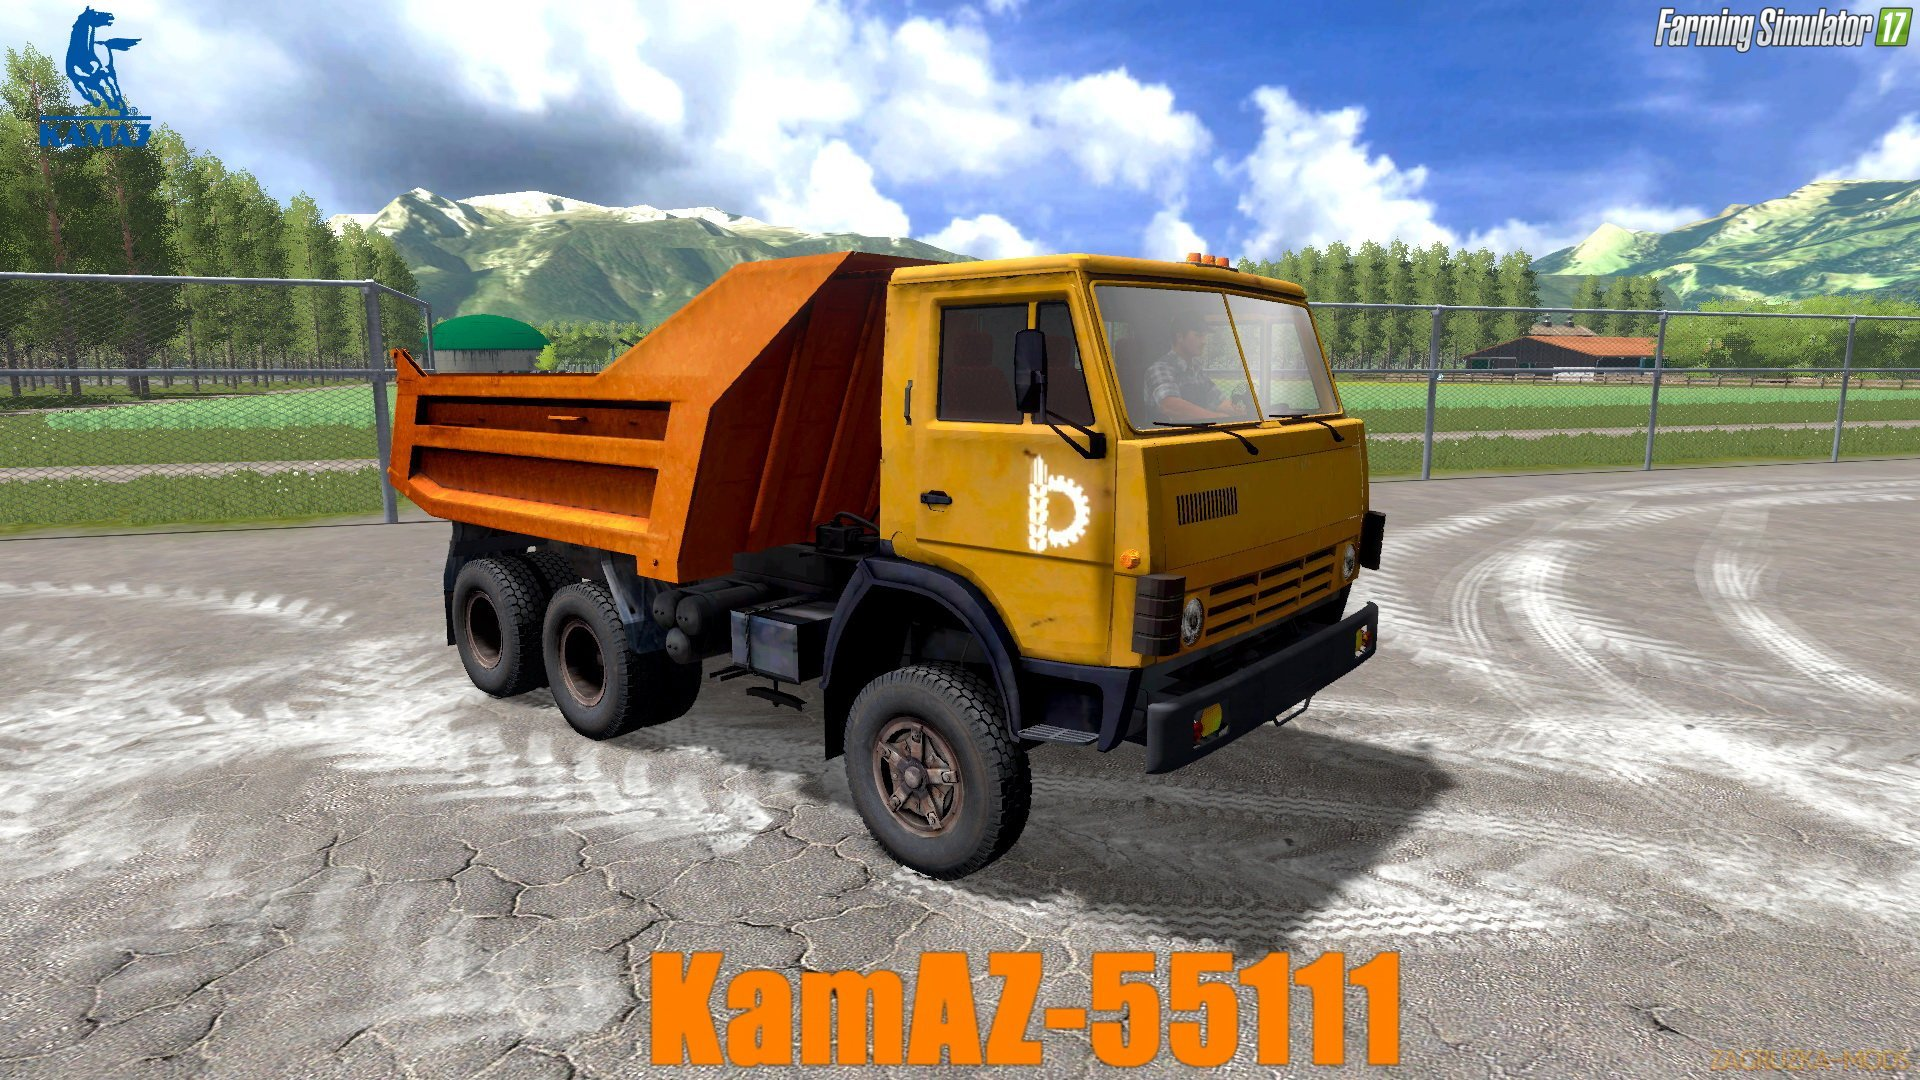 KamAZ-55111 Tipper Truck v1.0 for FS 17